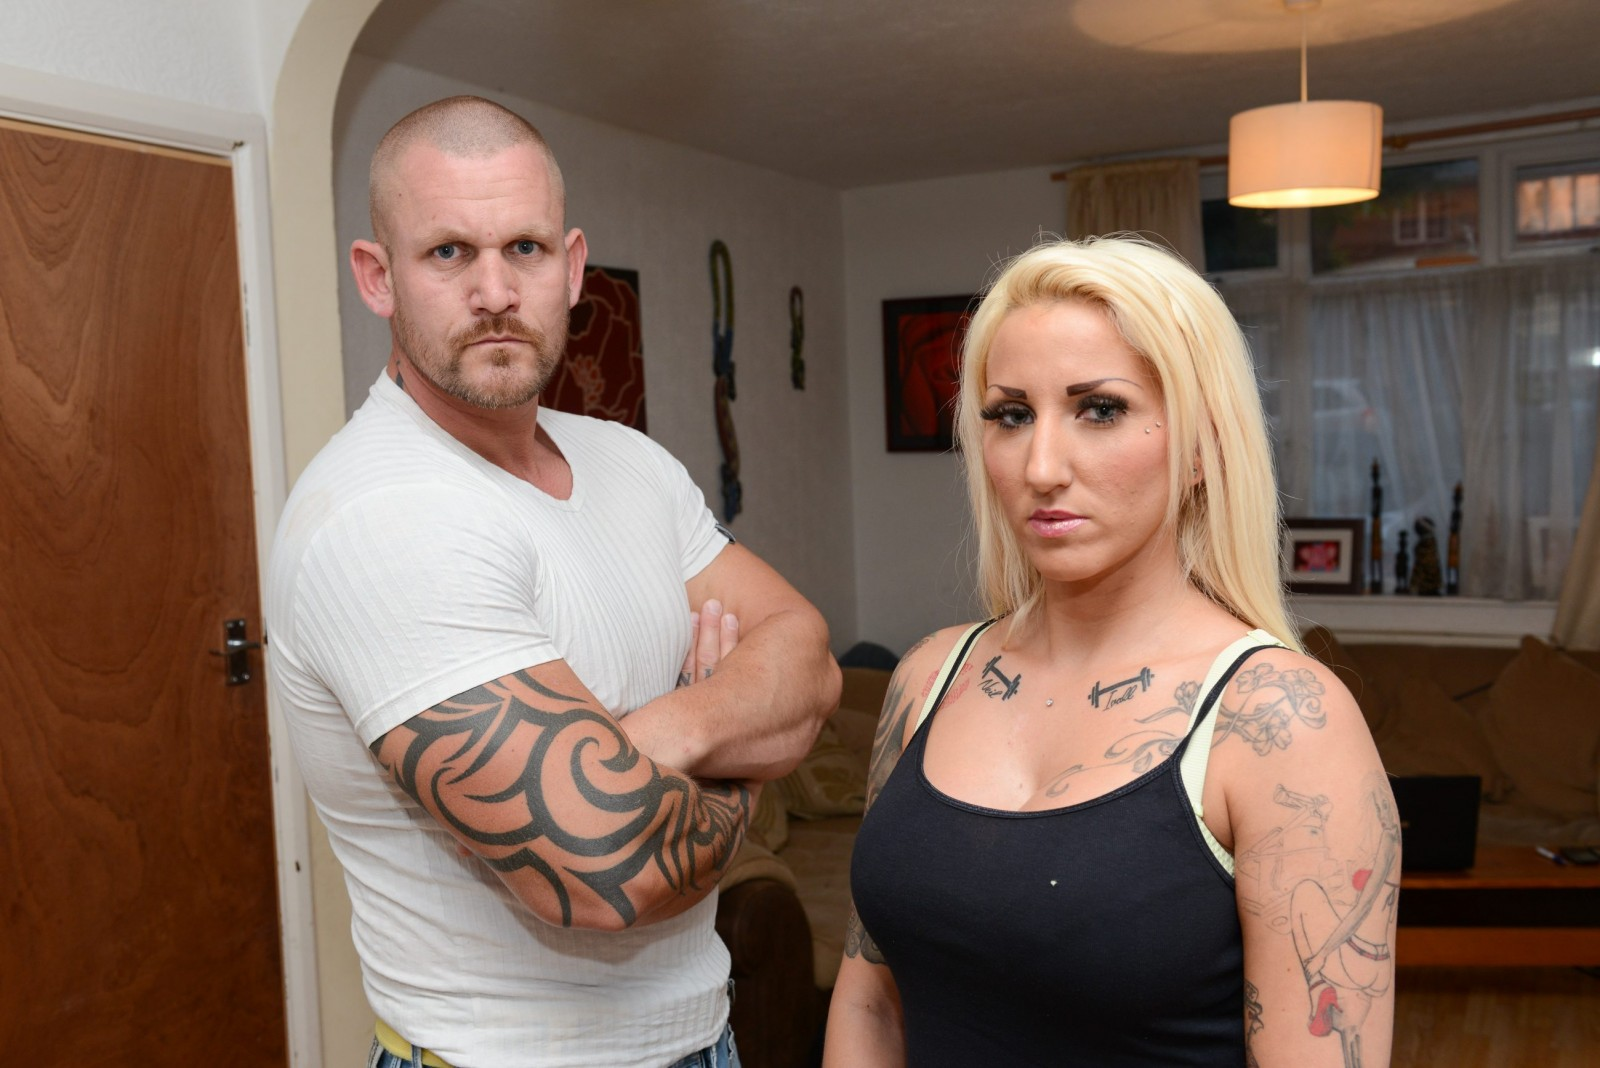 Parents turned paedophile hunters: This couple seek to 'expose' sexual predators